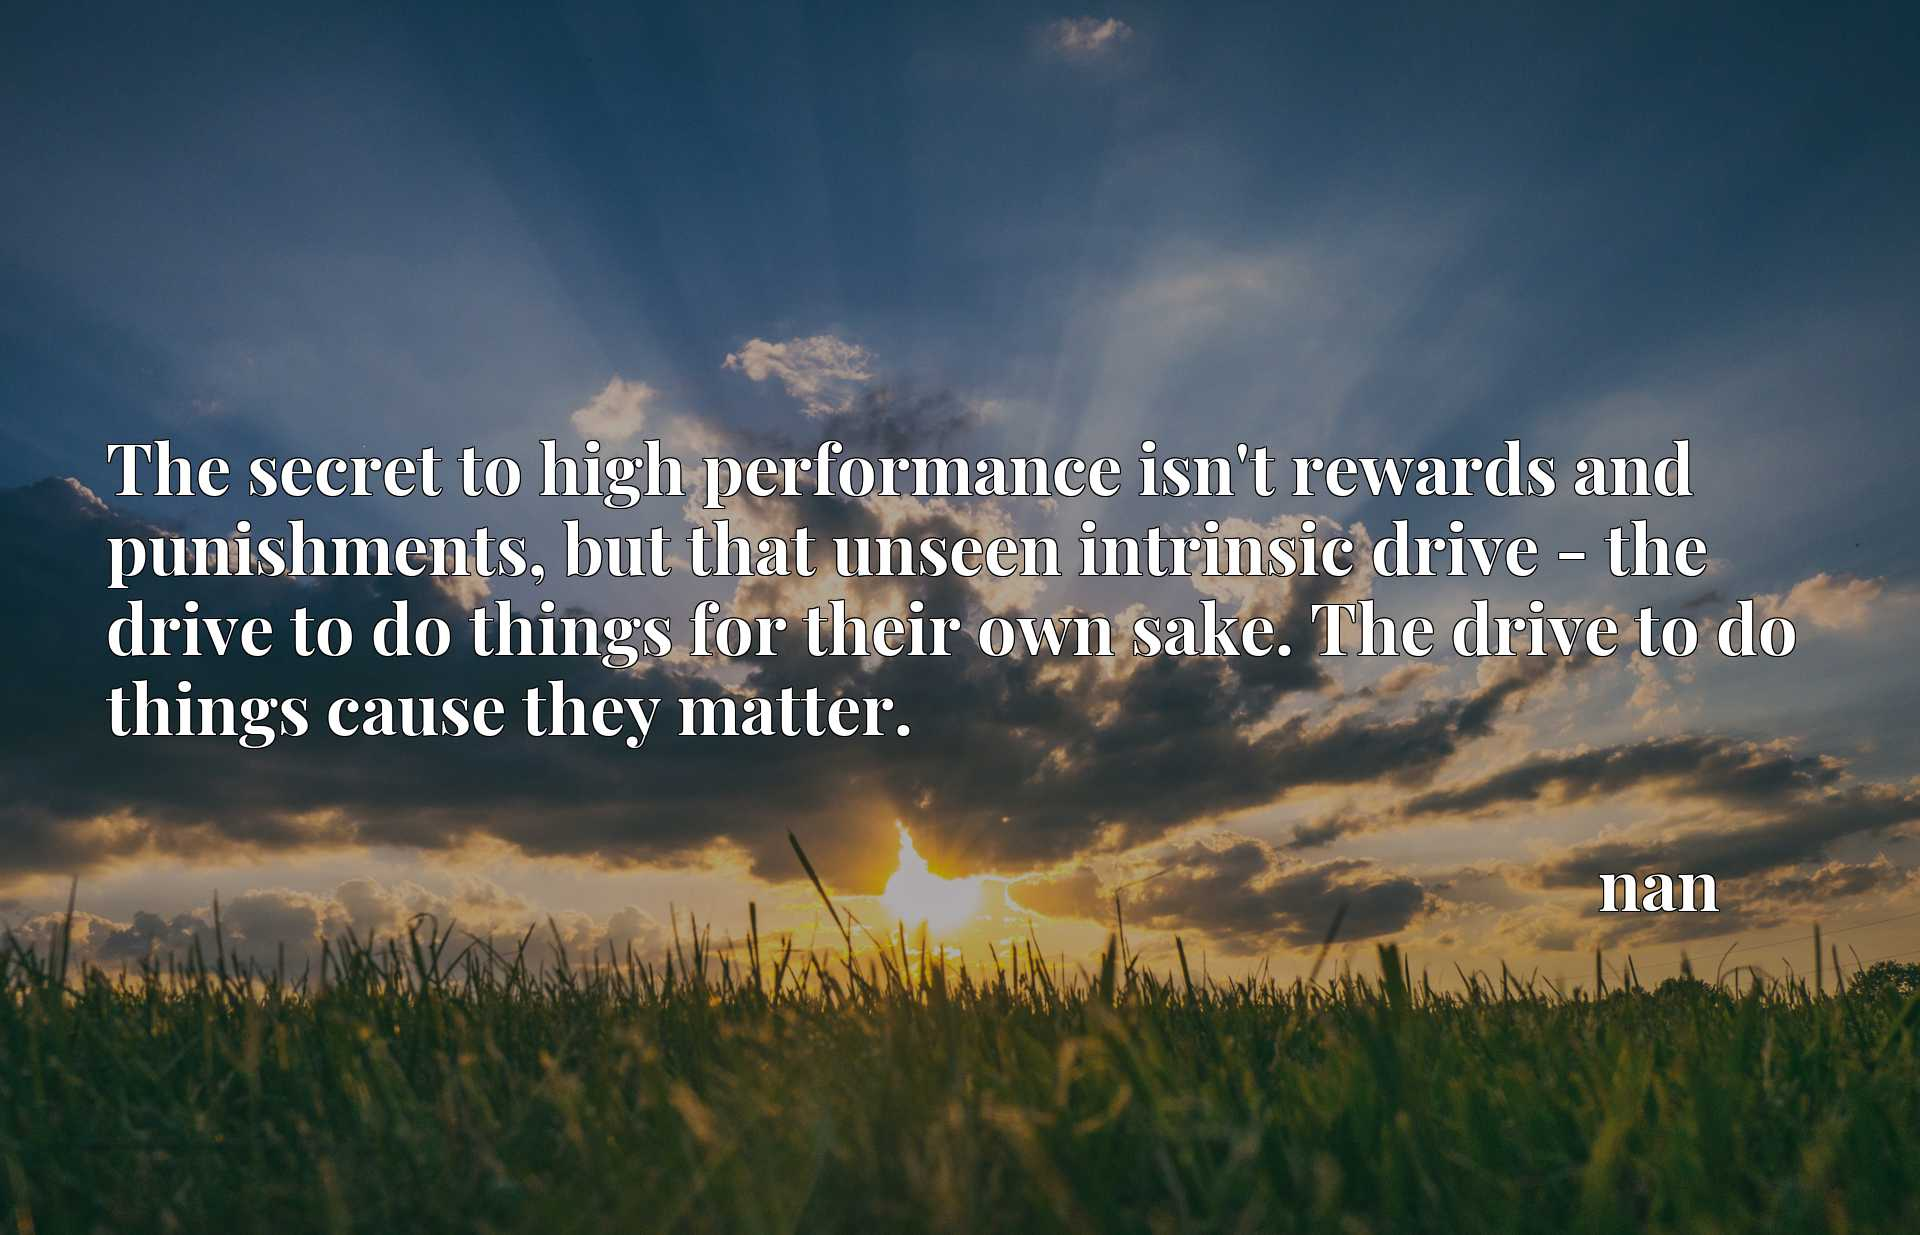 The secret to high performance isn't rewards and punishments, but that unseen intrinsic drive - the drive to do things for their own sake. The drive to do things cause they matter.